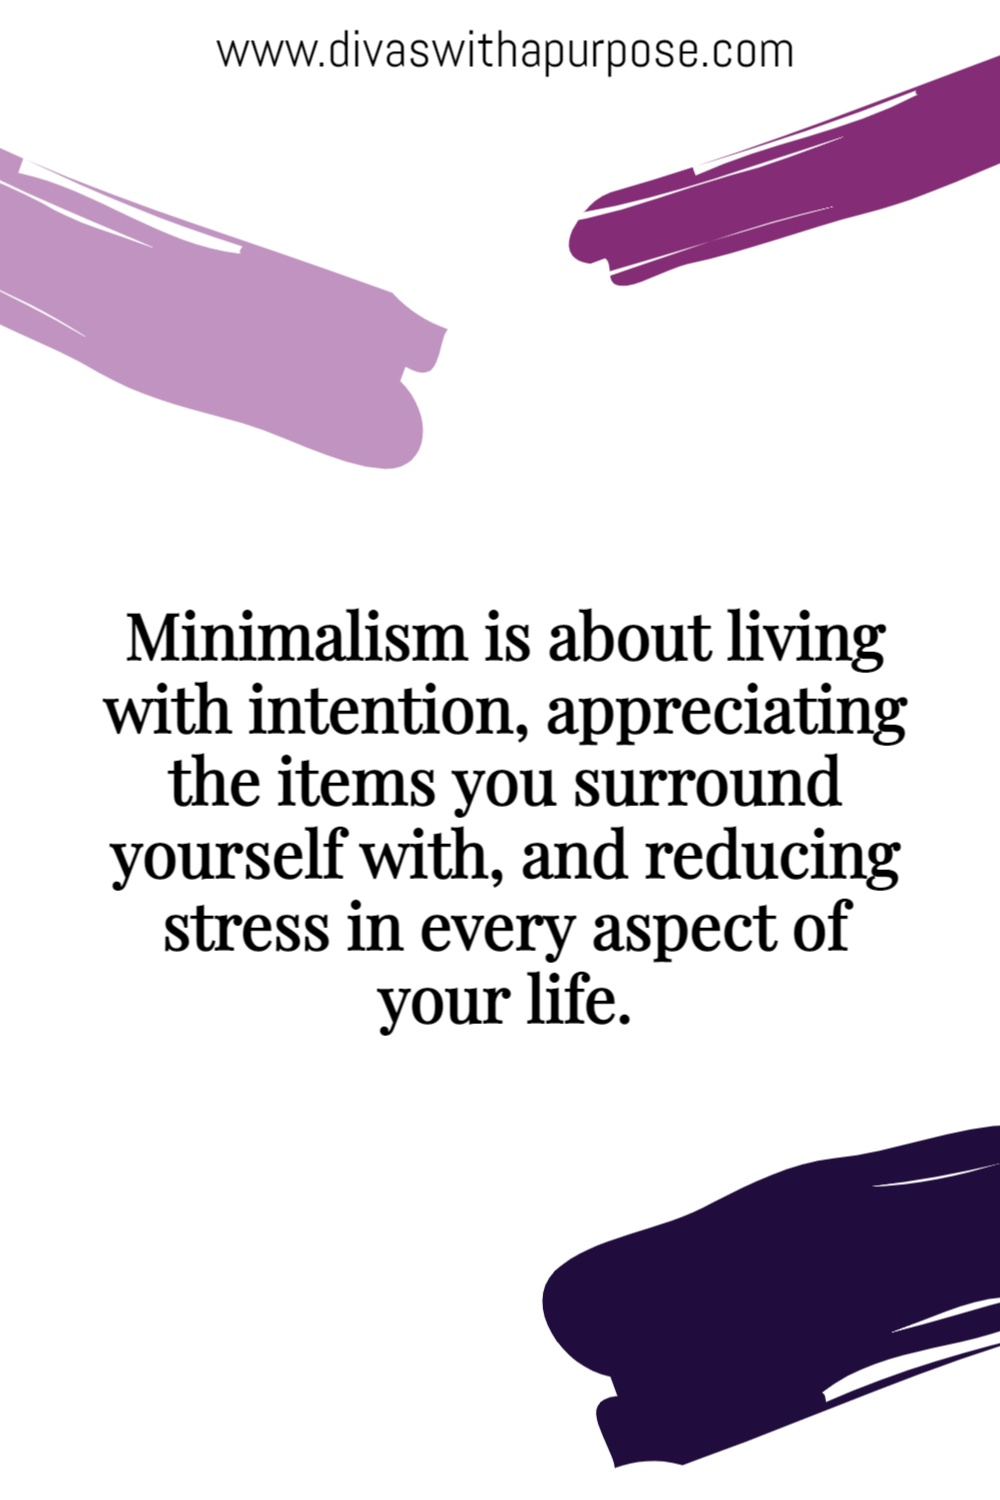 Minimalism is about living with intention